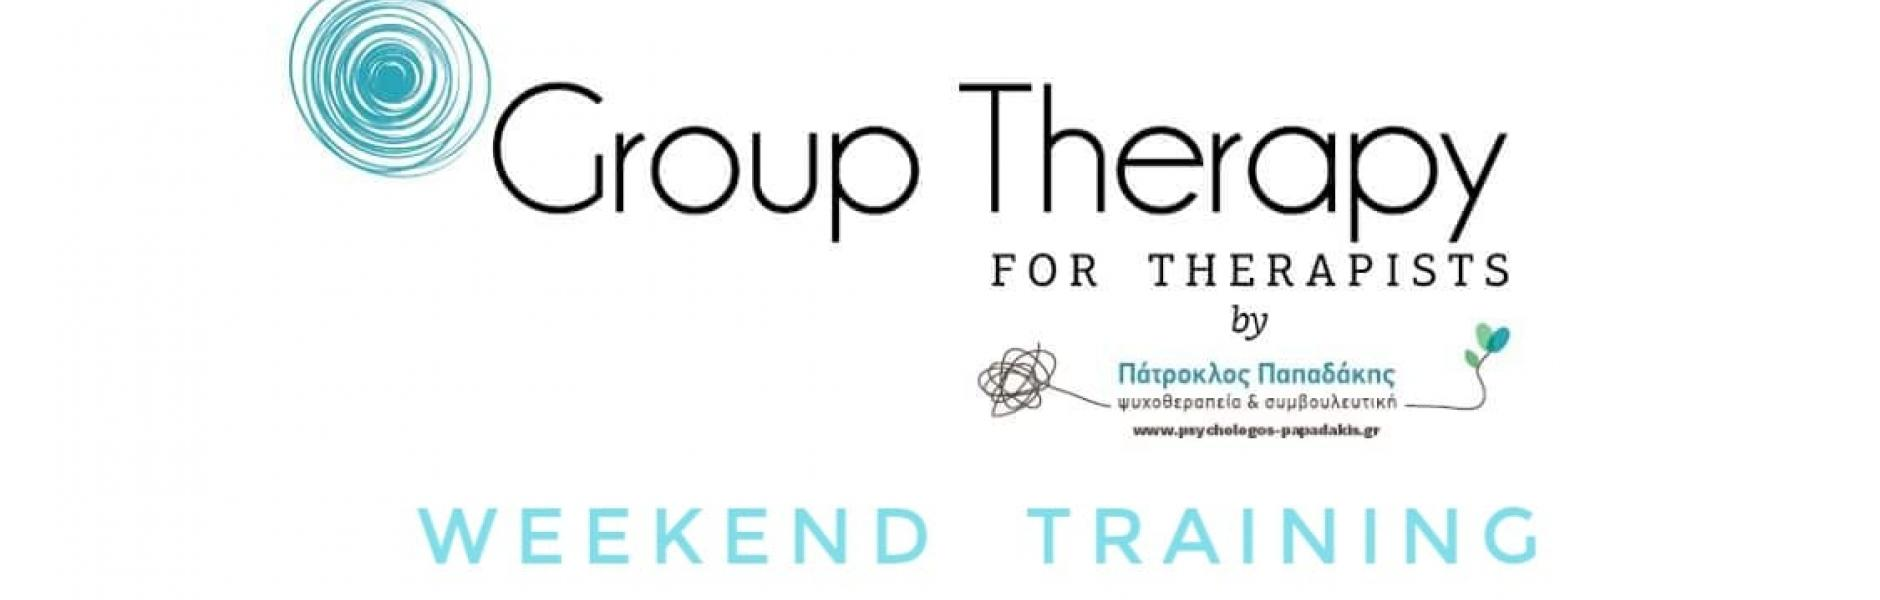 Group Therapy for Therapists: Weekend Training